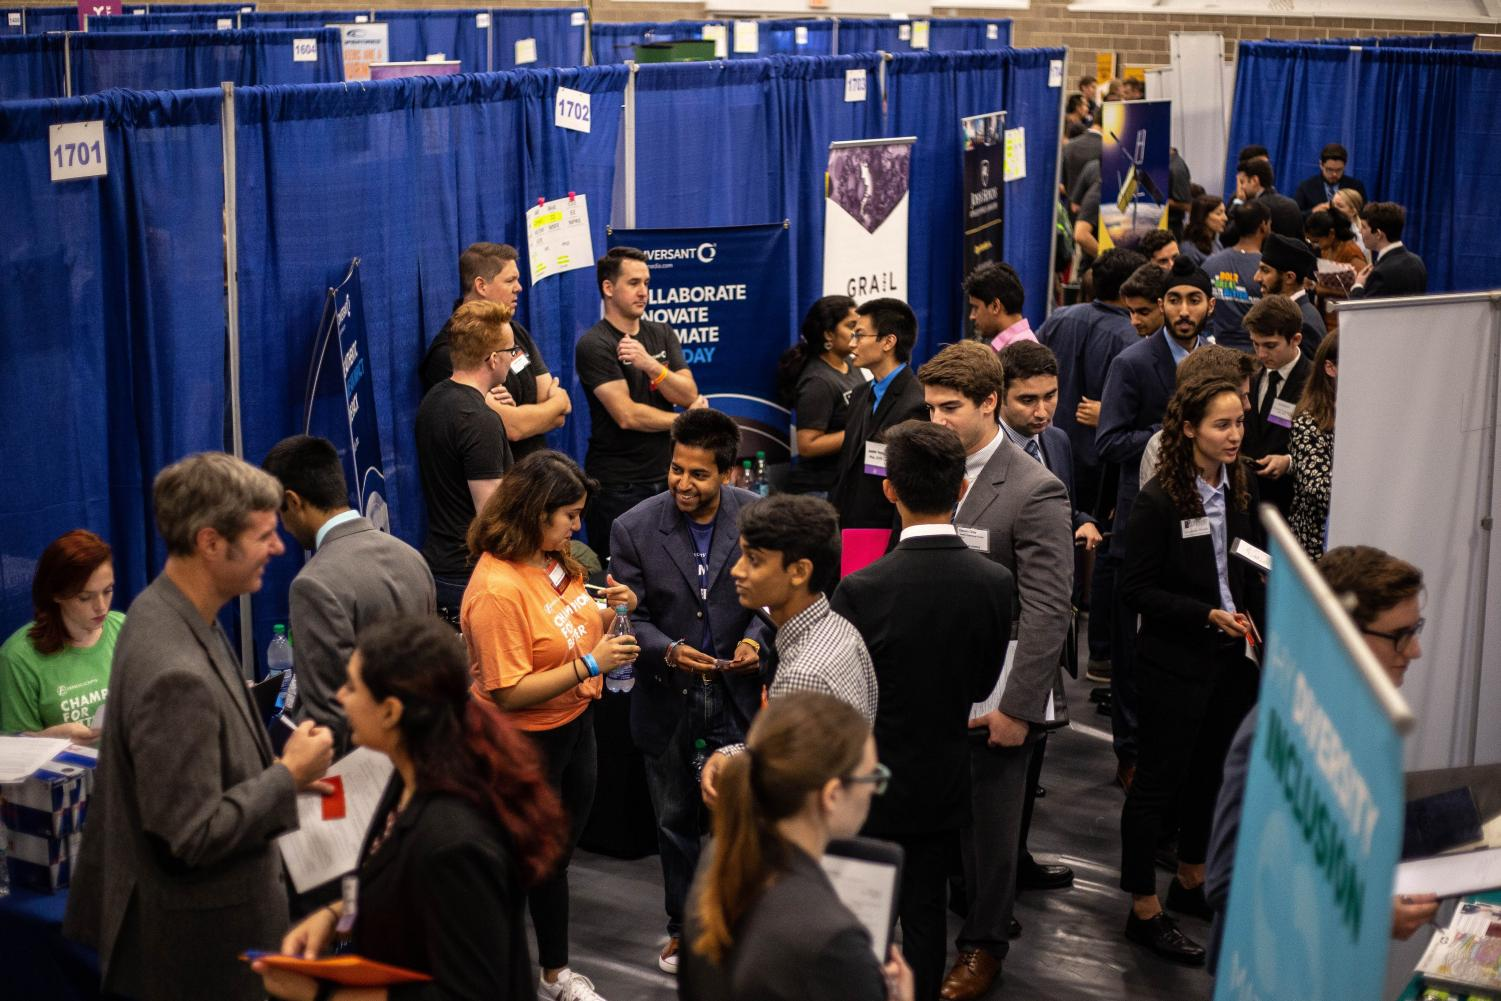 Students crowd the Activities and Recreation Center during the Engineering Career Fair on Tuesday. Over 7,000 students and 1,800 recruiters attended the fair.